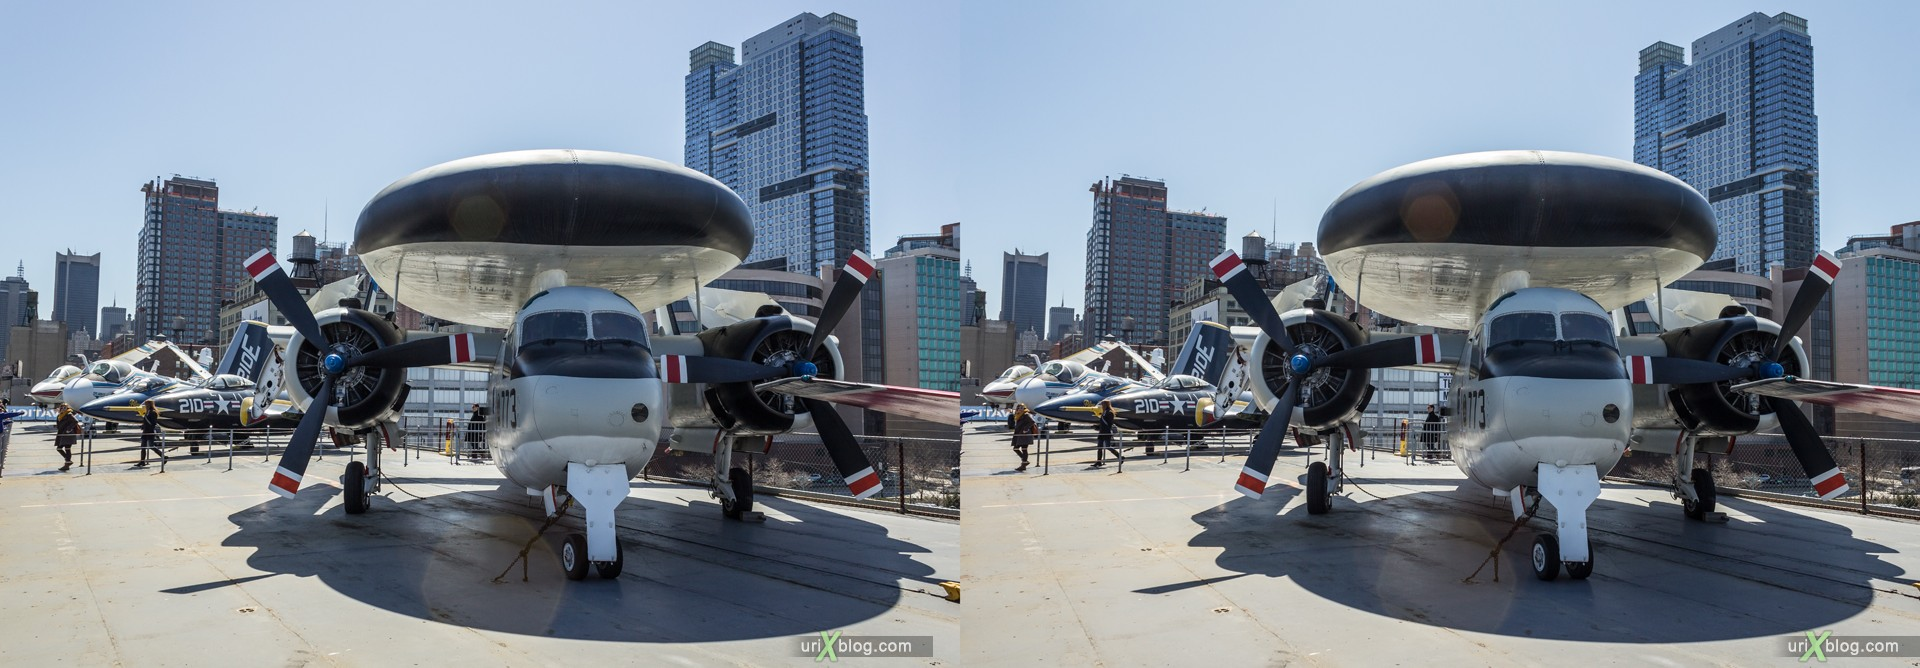 2013, USA, NYC, New York, aircraft carrier Intrepid museum, E-1B Tracer, sea, air, space, ship, submarine, aircraft, airplane, helicopter, military, 3D, stereo pair, cross-eyed, crossview, cross view stereo pair, stereoscopic